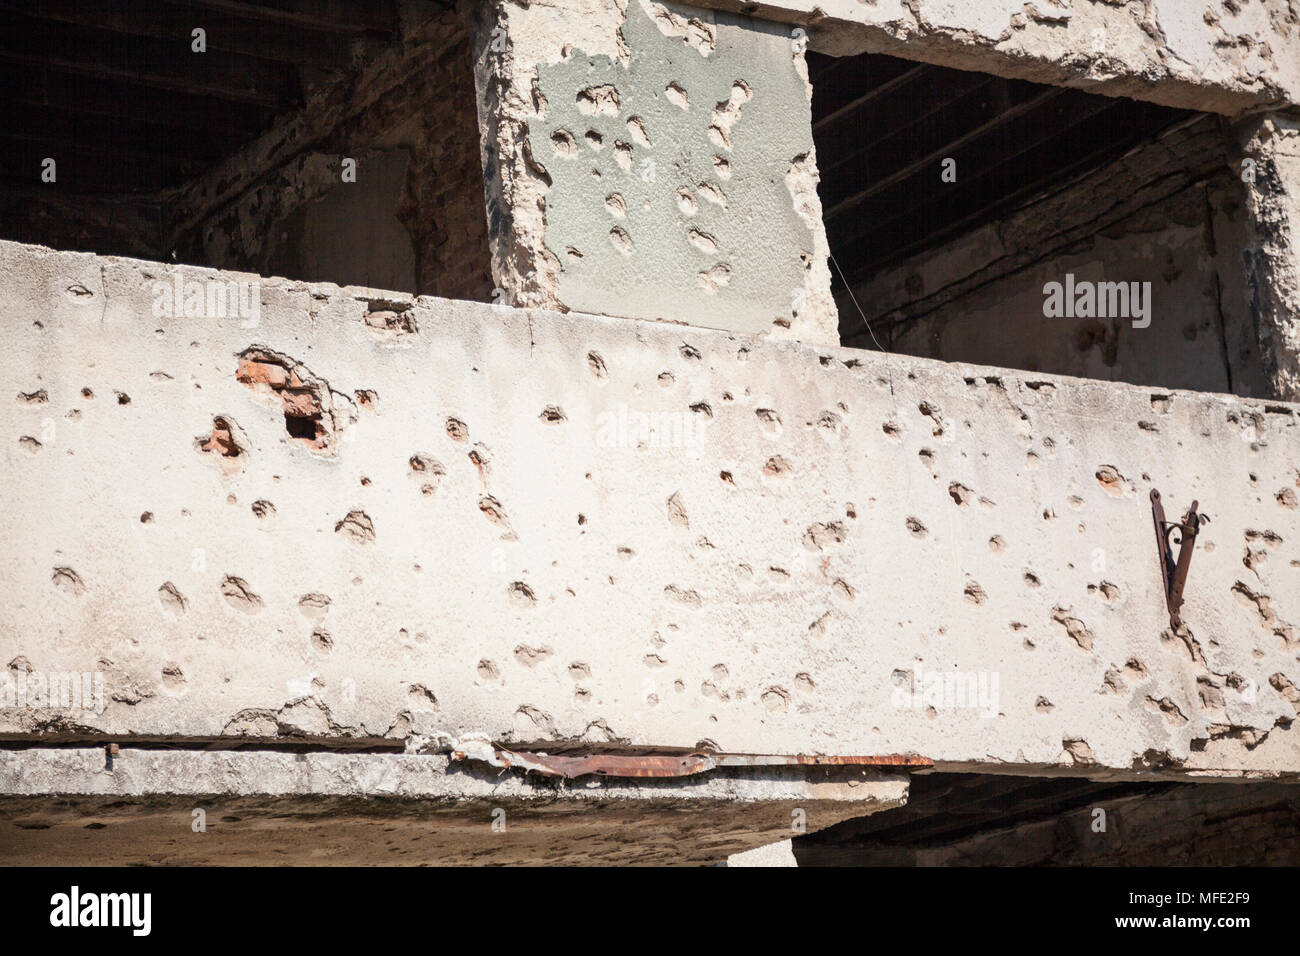 Close up of bullet damage on a wall from the Bosnian War in Mostar, Bosnia and Herzegovina - Stock Image